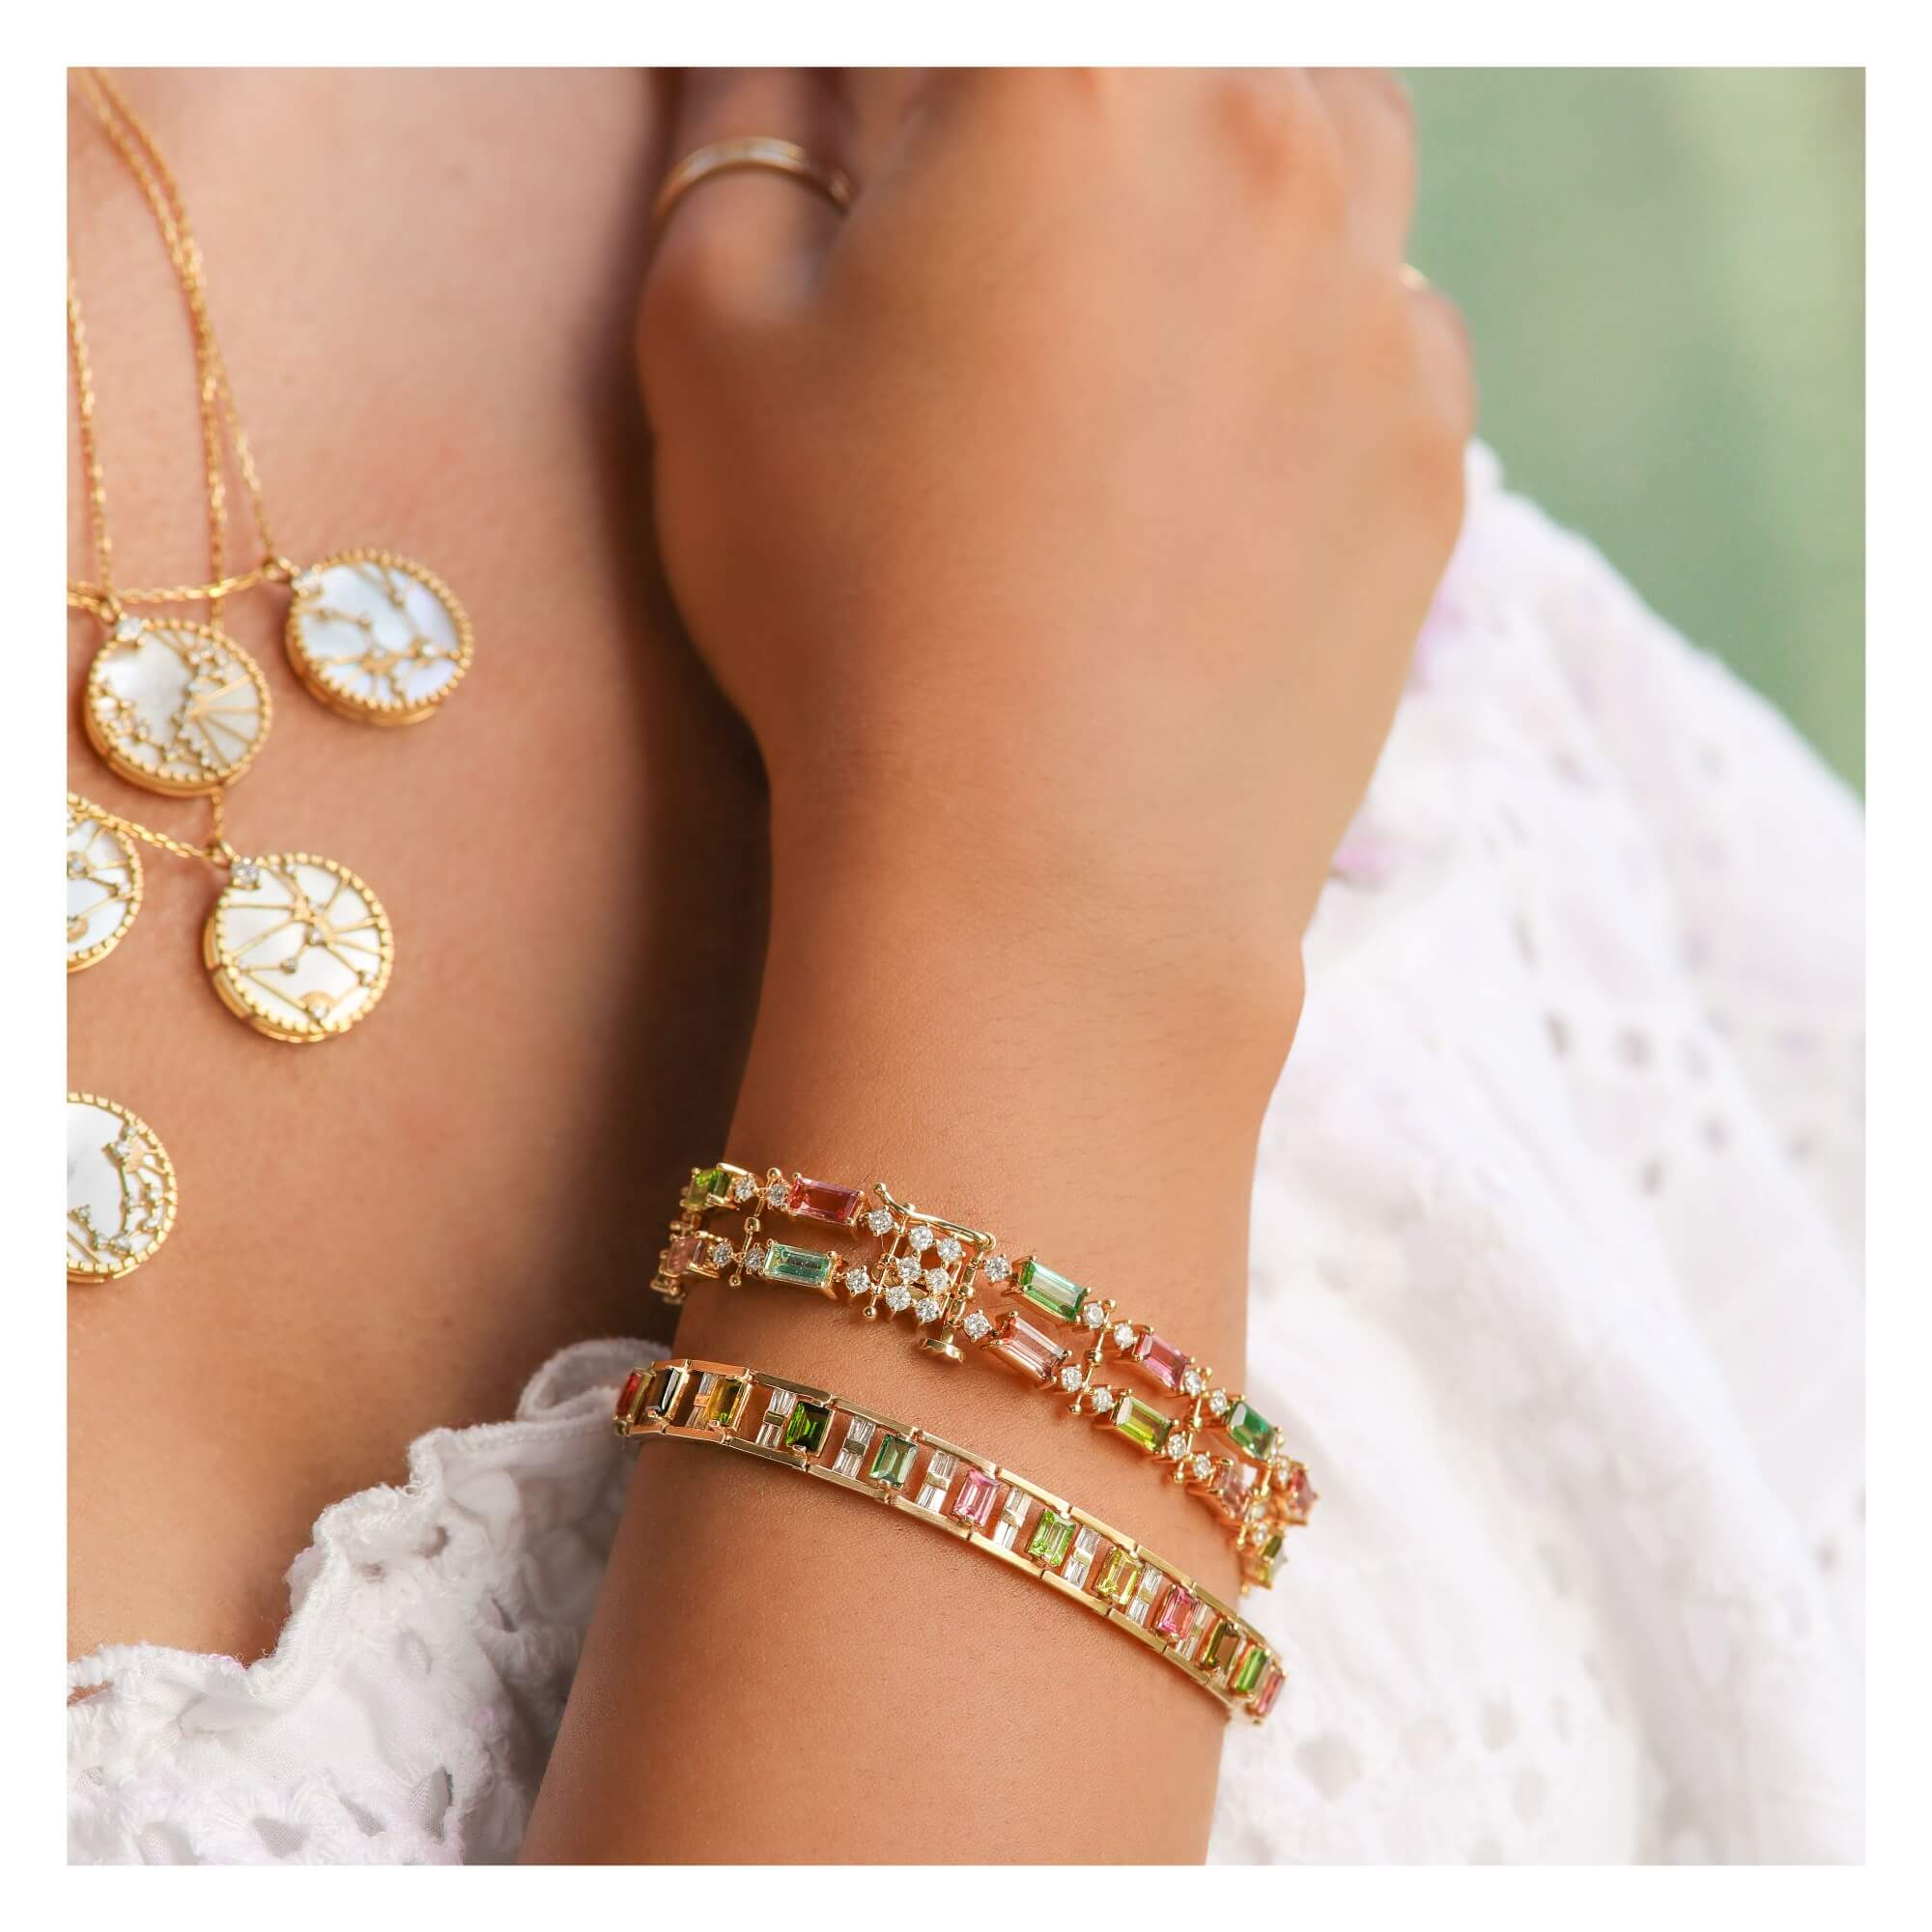 Tips on how to create the perfect jewelry stack